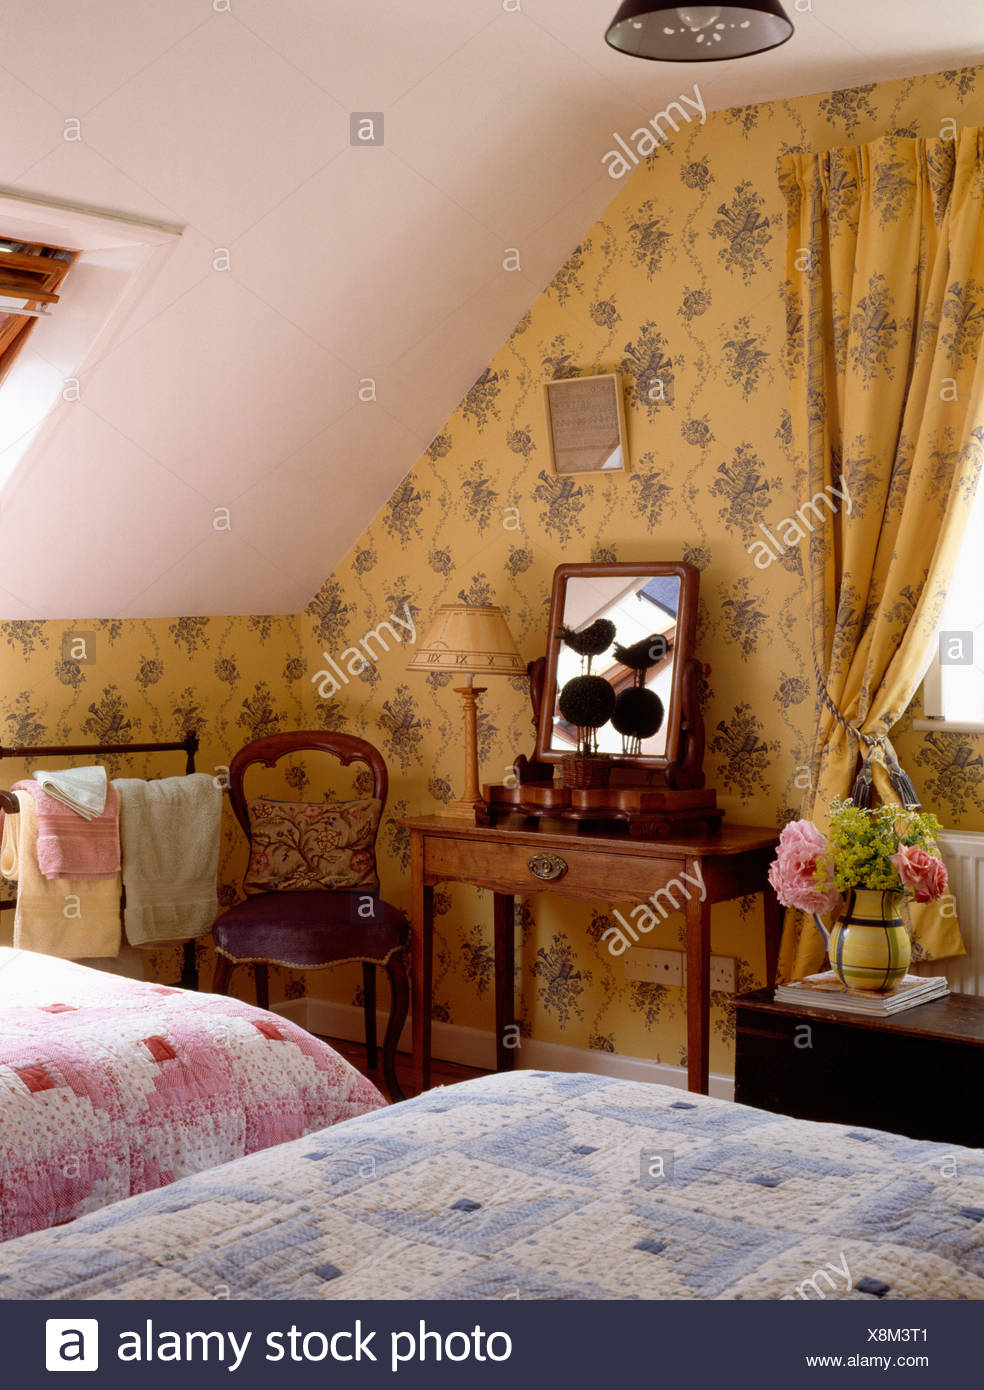 Floral Wallpaper And Matching Curtains In Cottage Attic Bedroom With Pink And Blue Quilts On Twin Beds Stock Photo Alamy